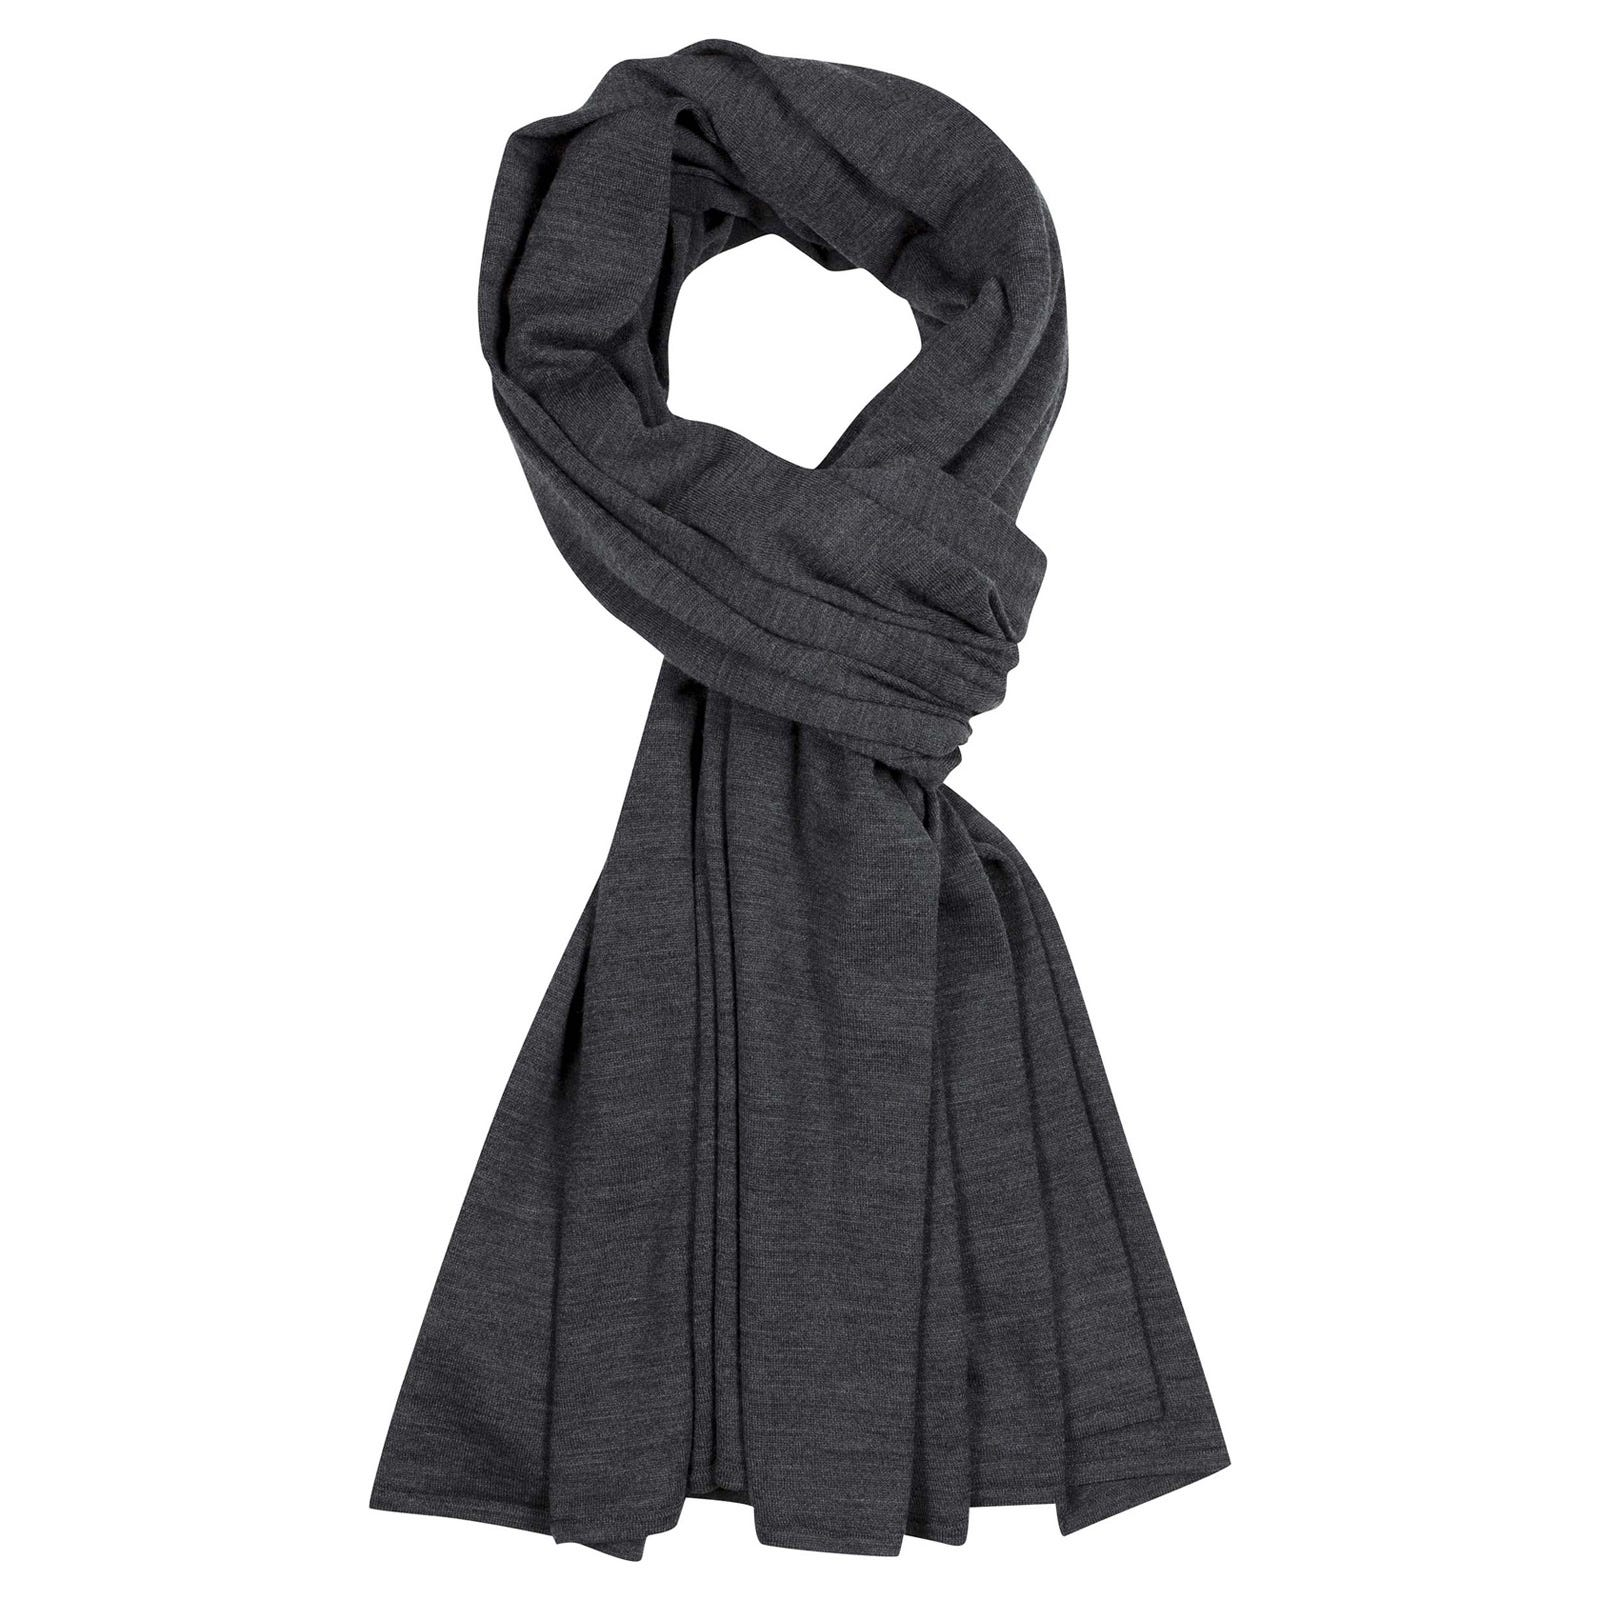 John Smedley wings Merino Wool Shawl in Charcoal-ONE